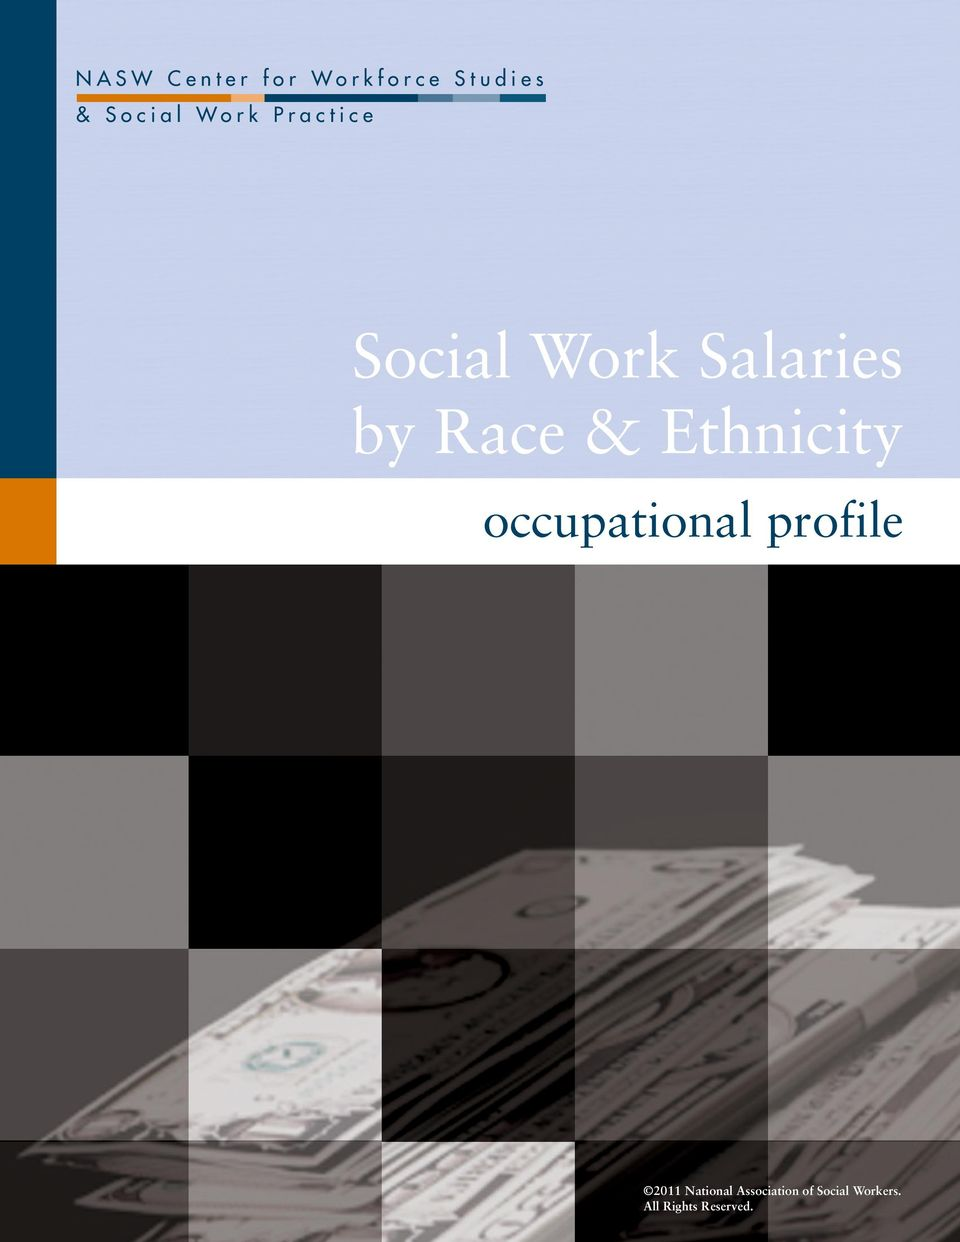 Salaries by Race & Ethnicity occupational profile 2011